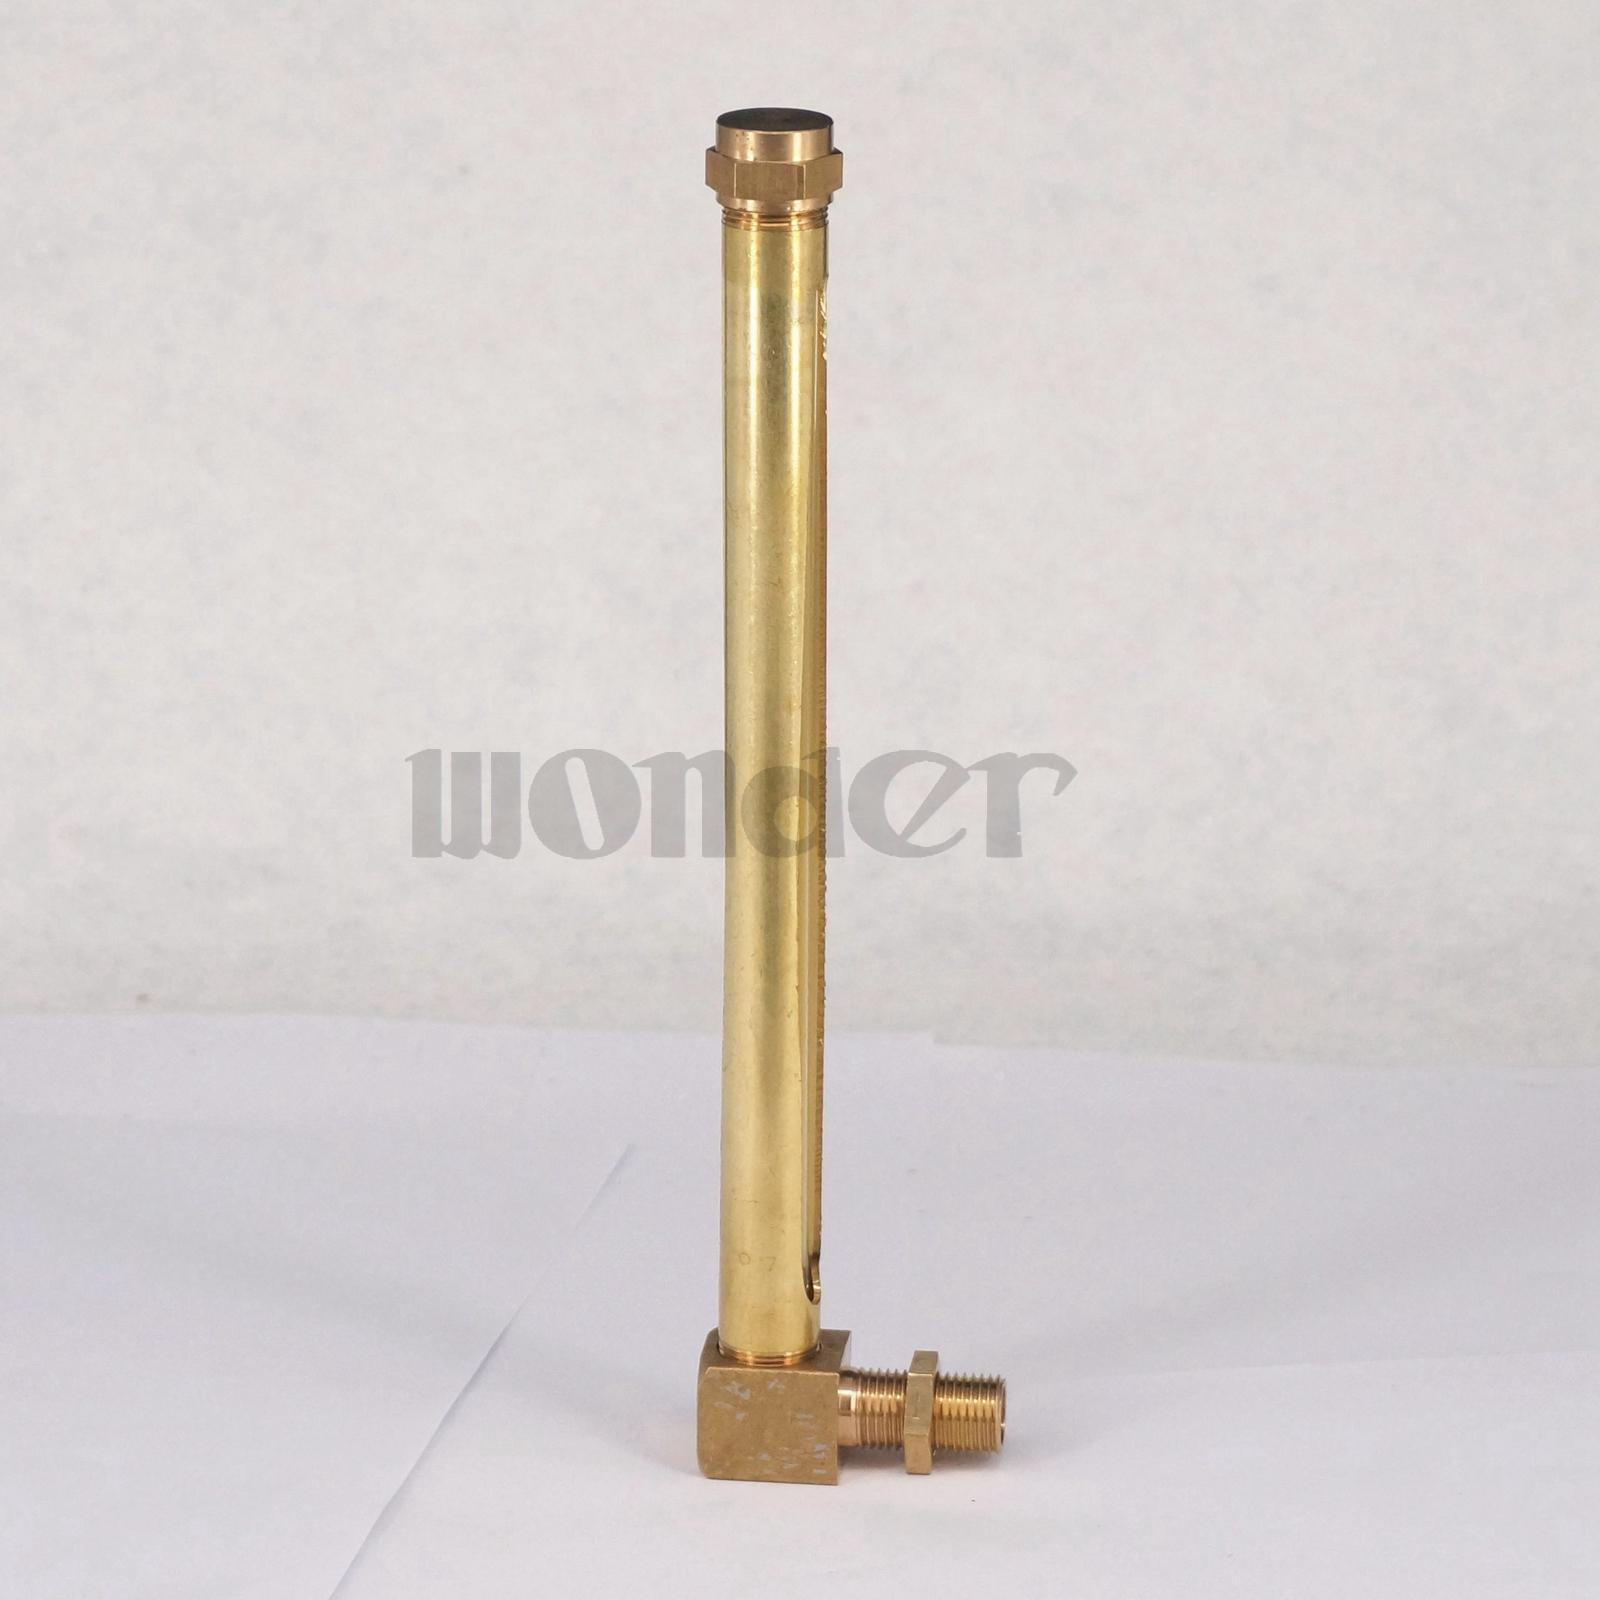 Quot bsp mm lube devices elbow brass oil level gauge